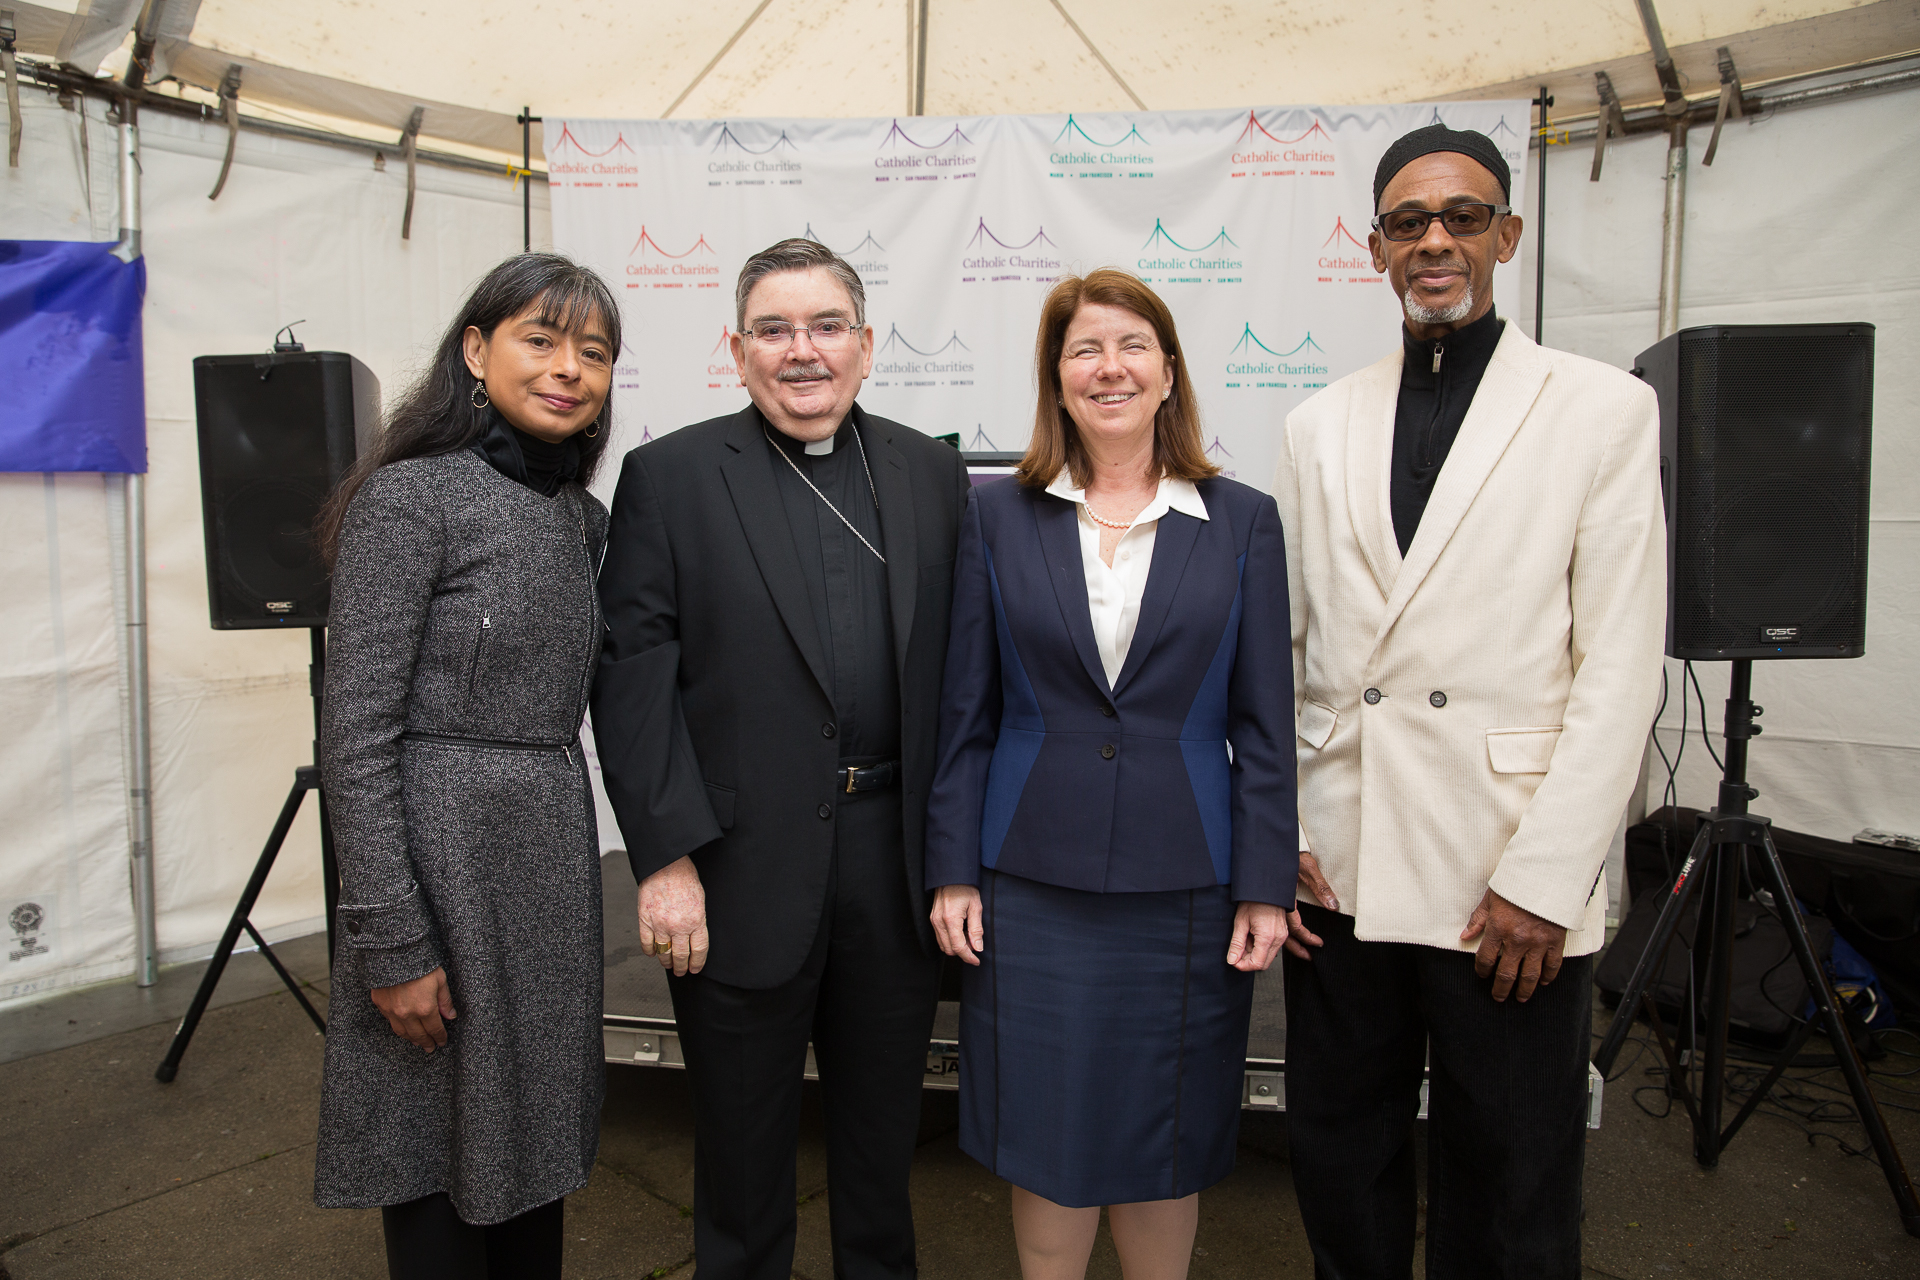 Jilma Meneses, Catholic Charities Chief Executive Officer, joined our Interfaith Blessing celebrants, Bishop William Justice of the San Francisco Archdiocese, Senior Rabbi Beth Singer of Congregation Emanu-El, and Imam Na'il Shakoor of the San Francisco M